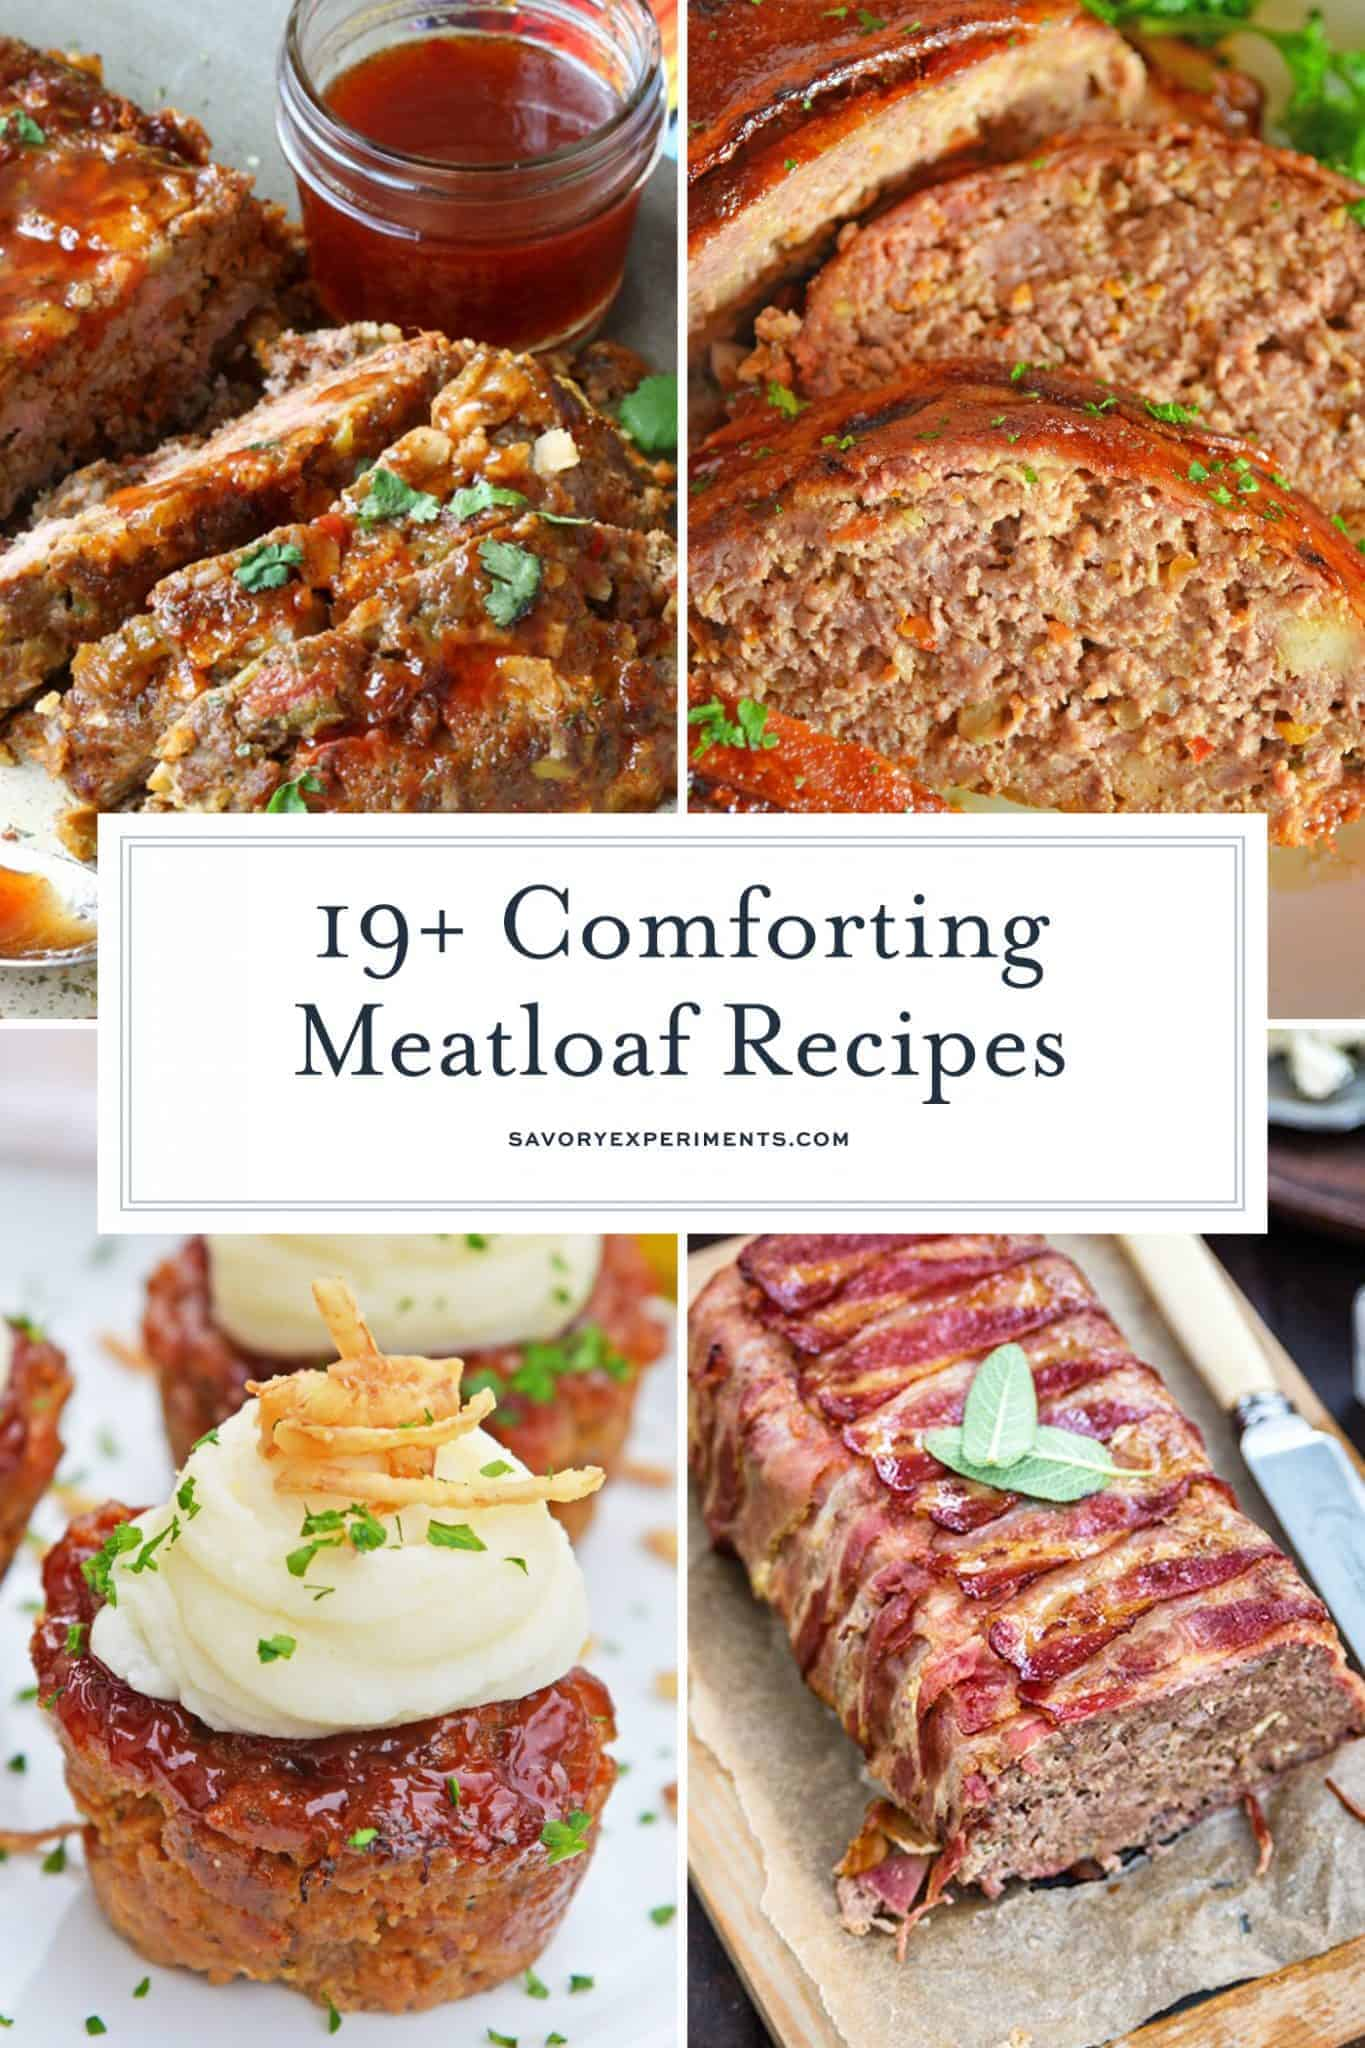 19+ Comforting Meatloaf Recipes you will want to make tonight!